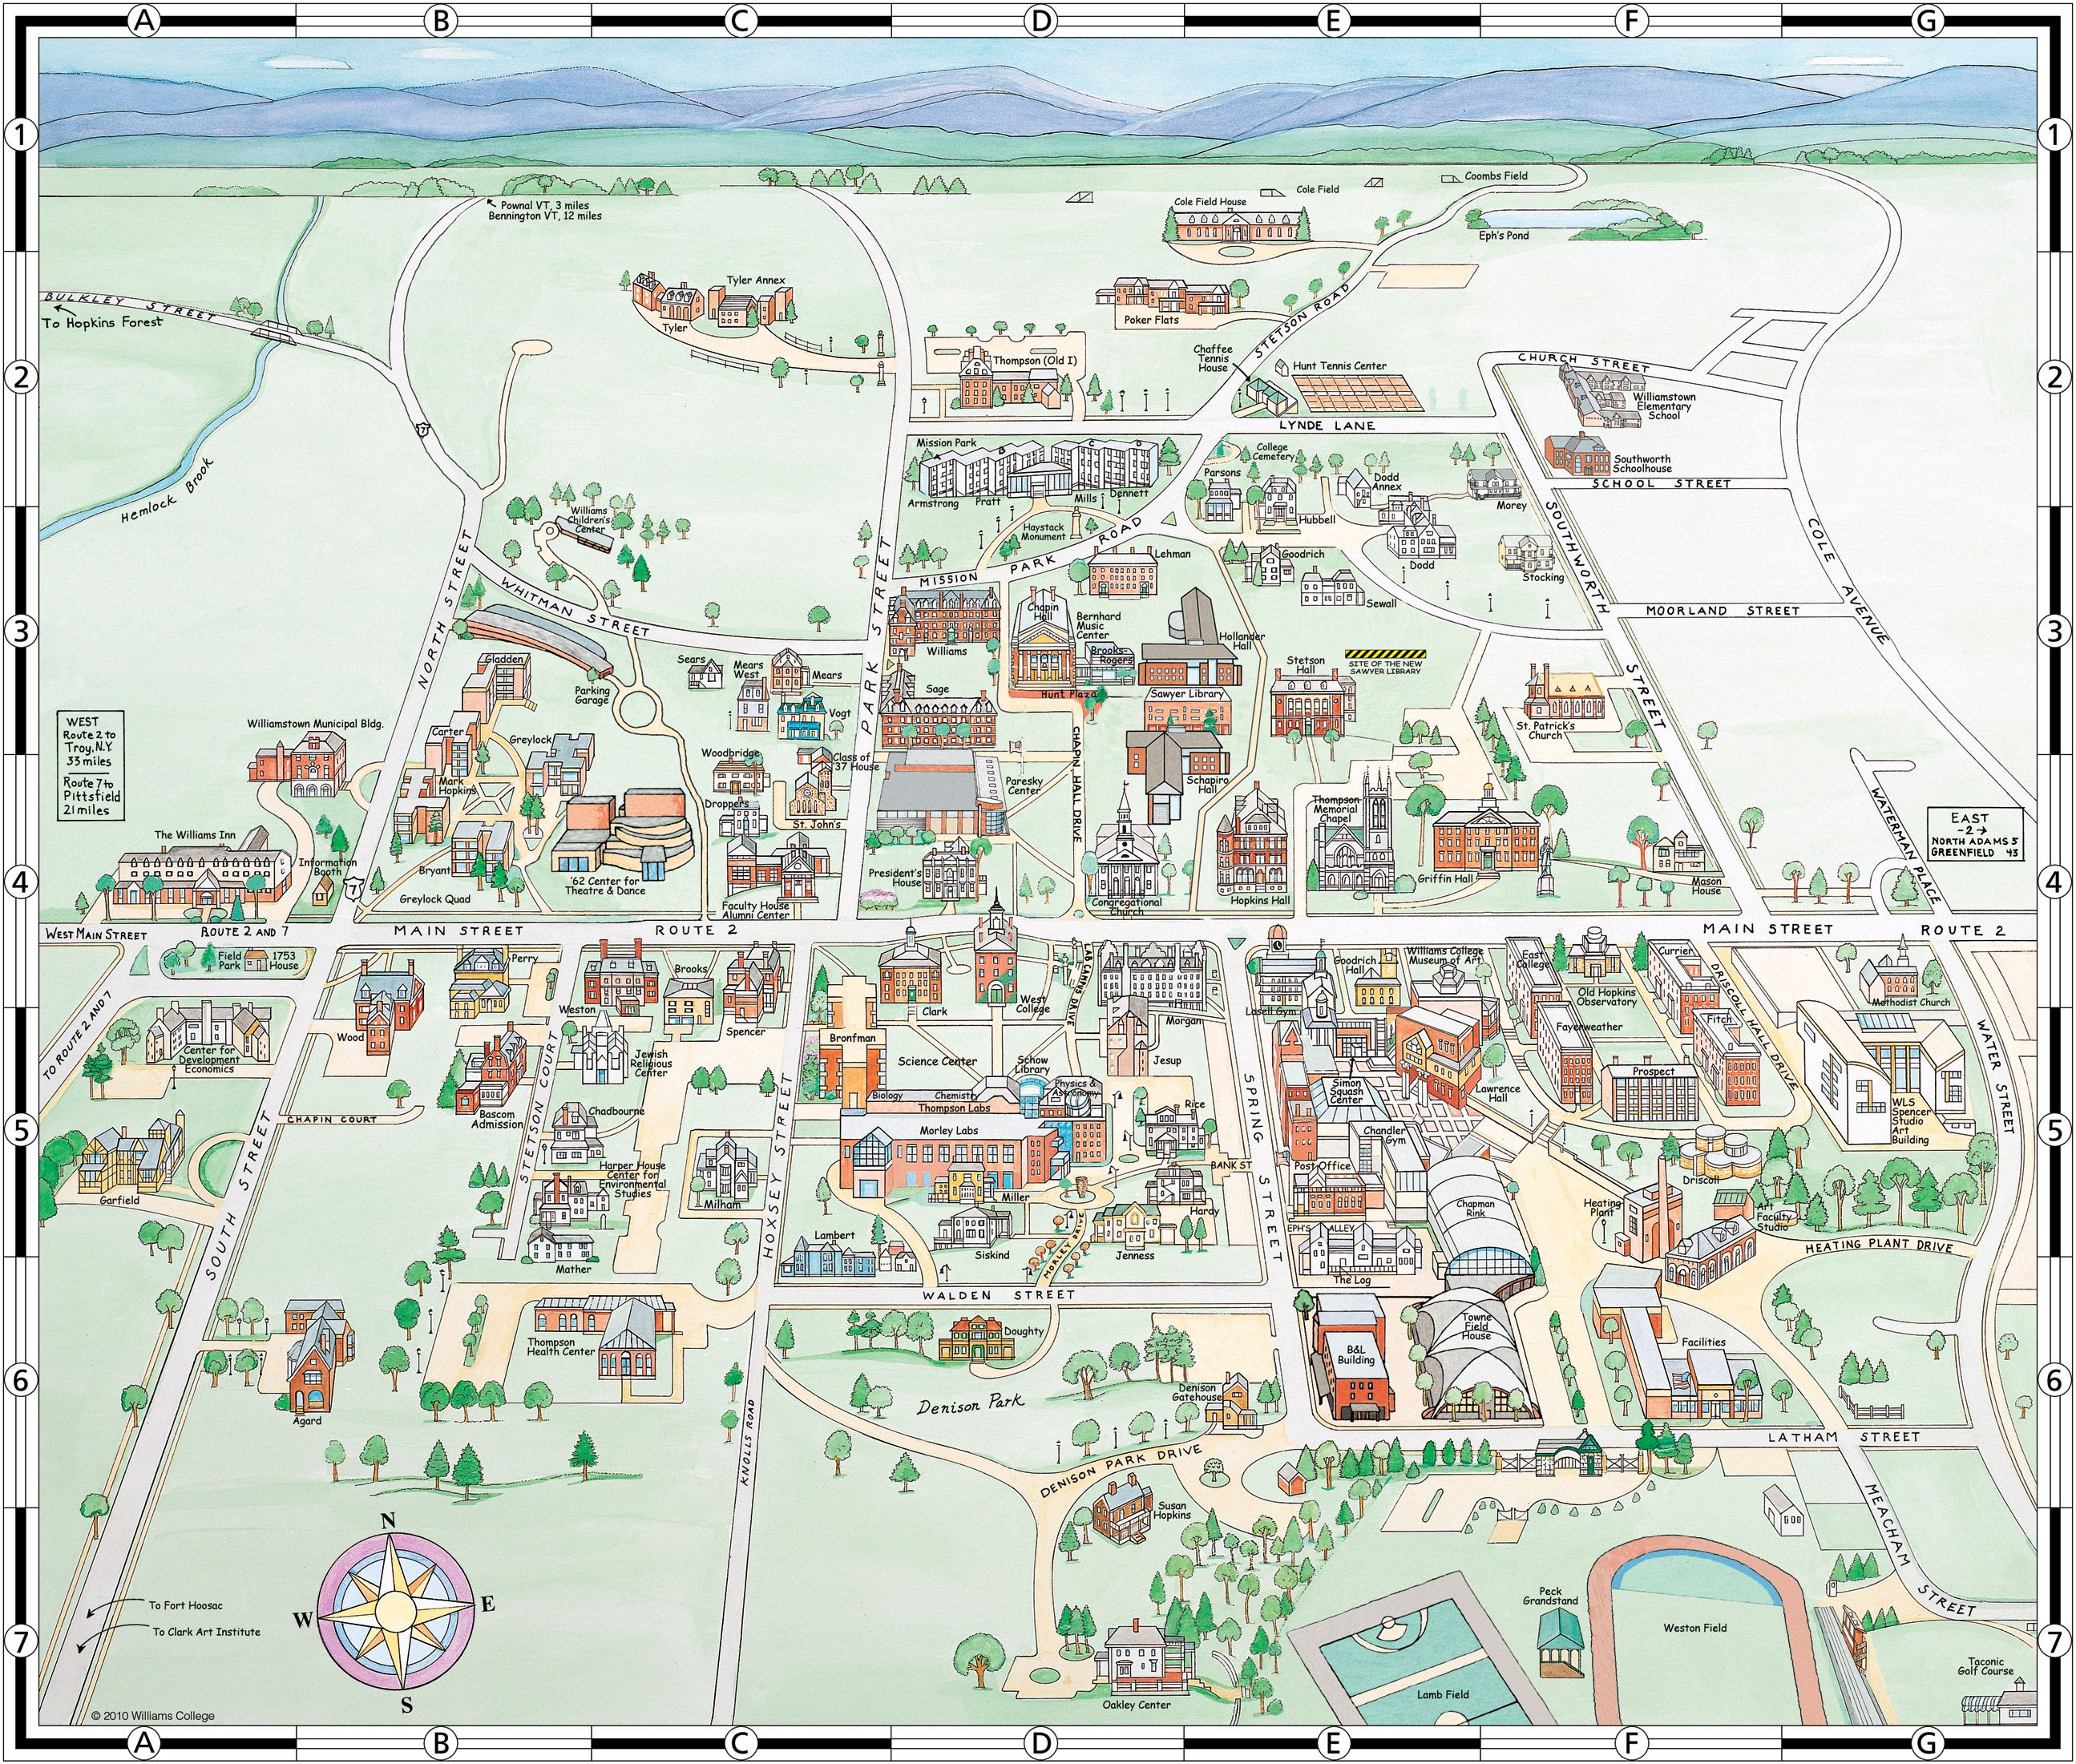 Williams College Map Williams College Campus Map | Pioneer Valley   The Berkshires